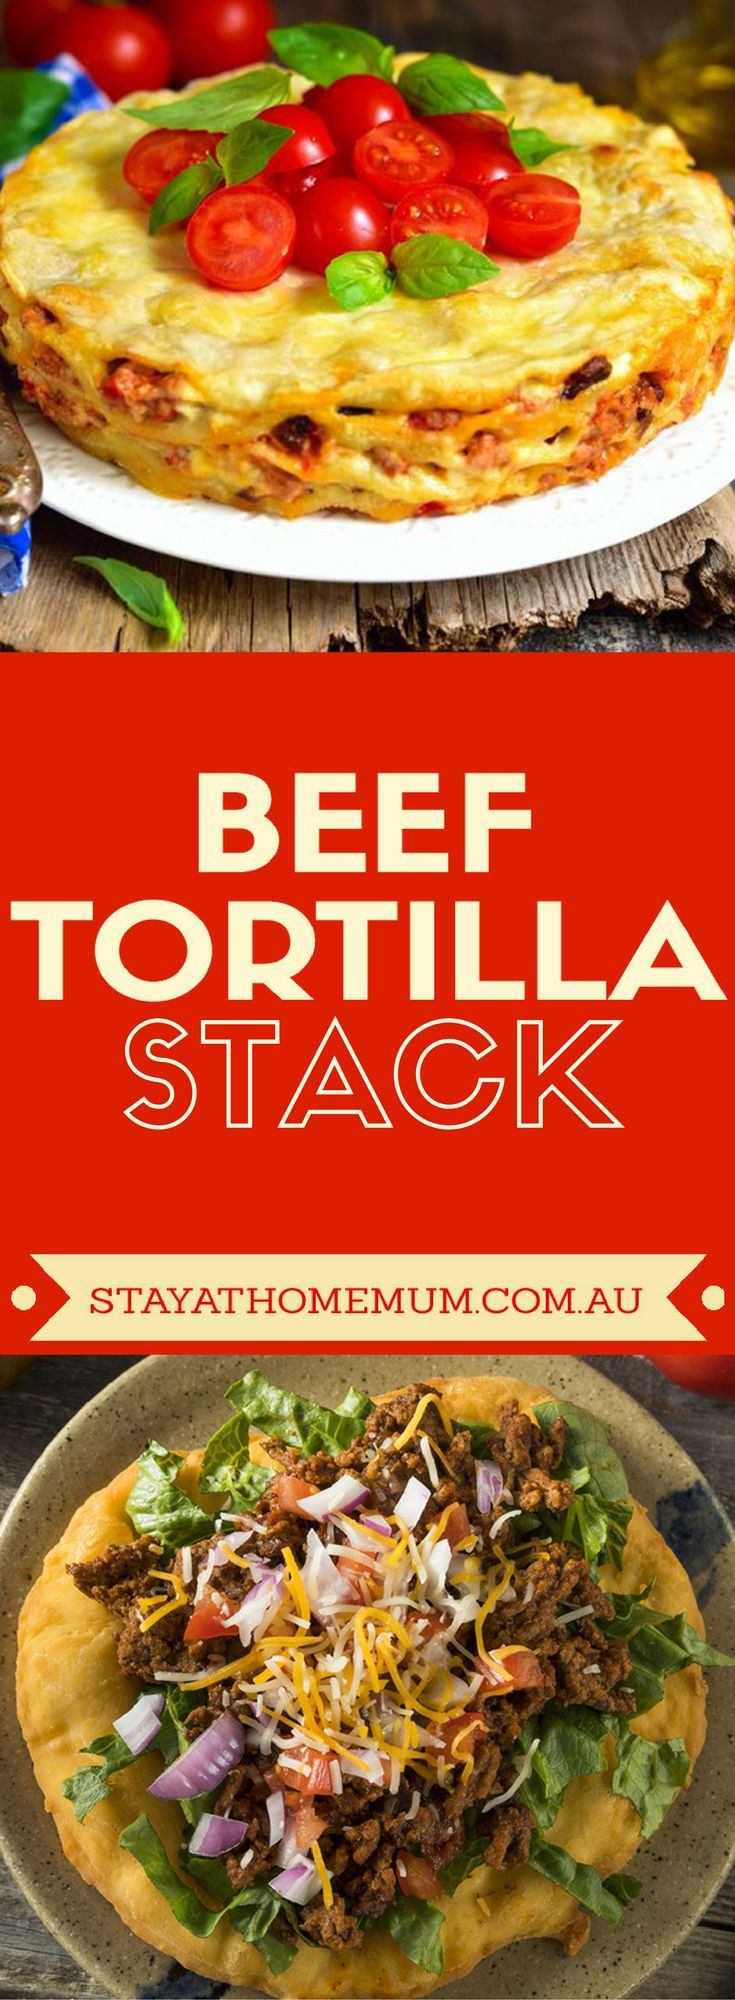 Like lasagne, but really flavourful! #beef #recipes